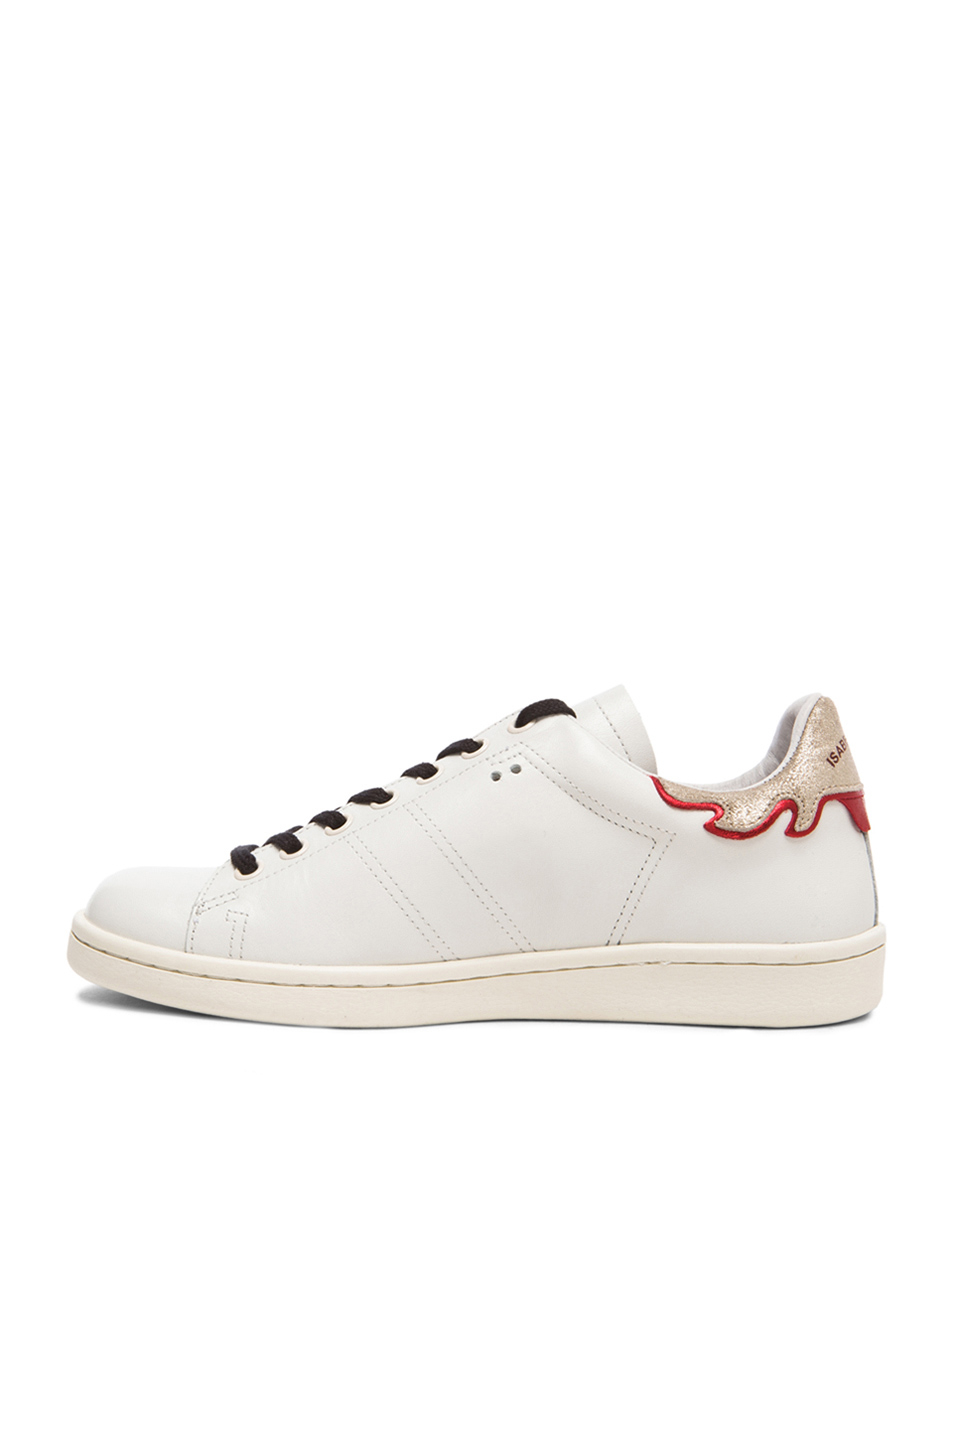 isabel marant bart sneaker in white lyst. Black Bedroom Furniture Sets. Home Design Ideas